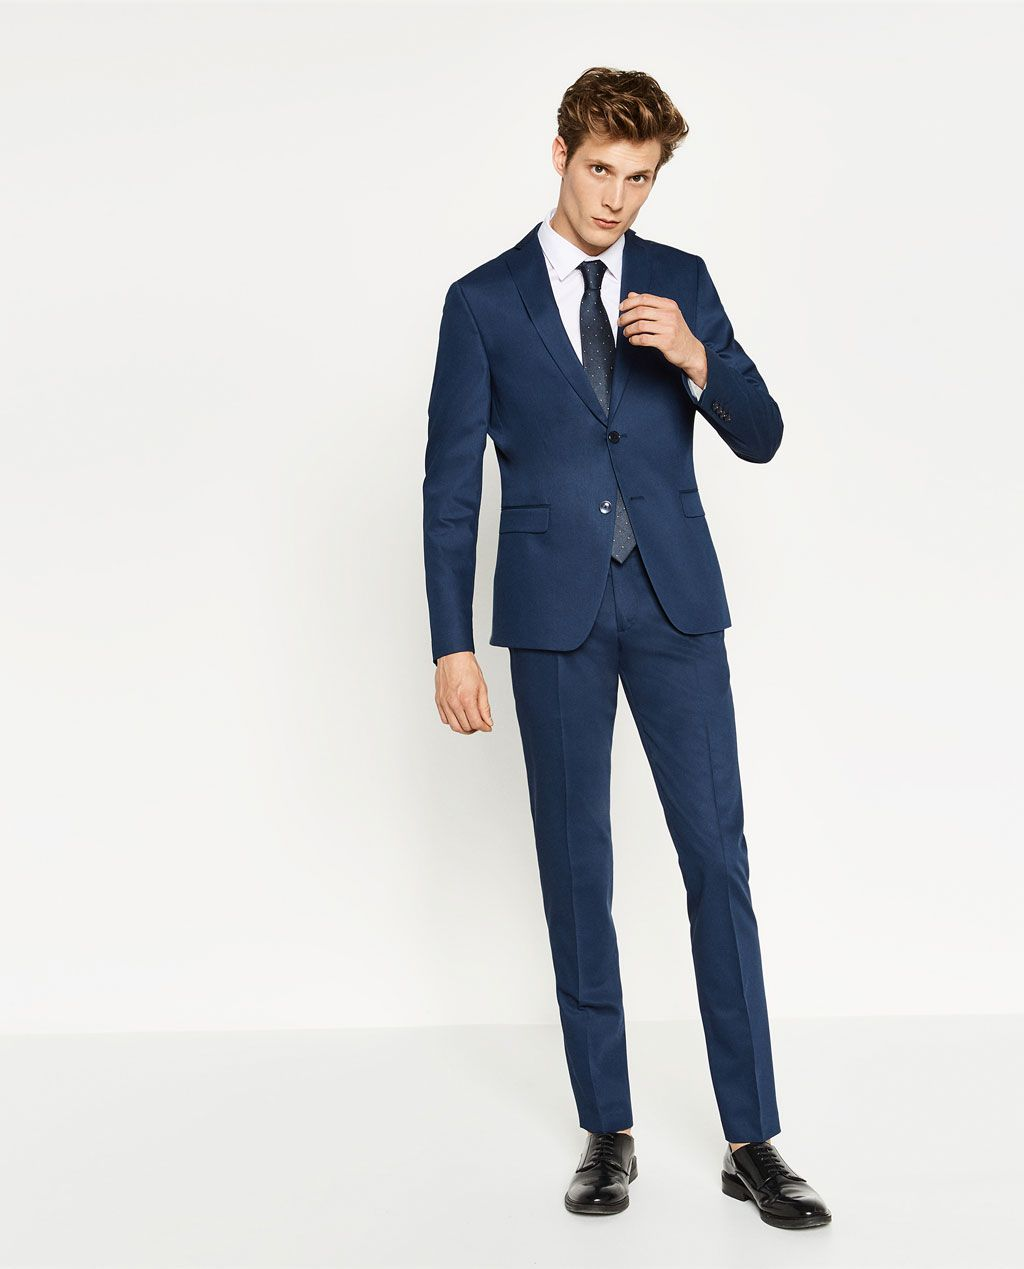 826931c8 Image 1 of CINZATO SUIT TROUSERS from Zara | For Aaron in 2019 ...